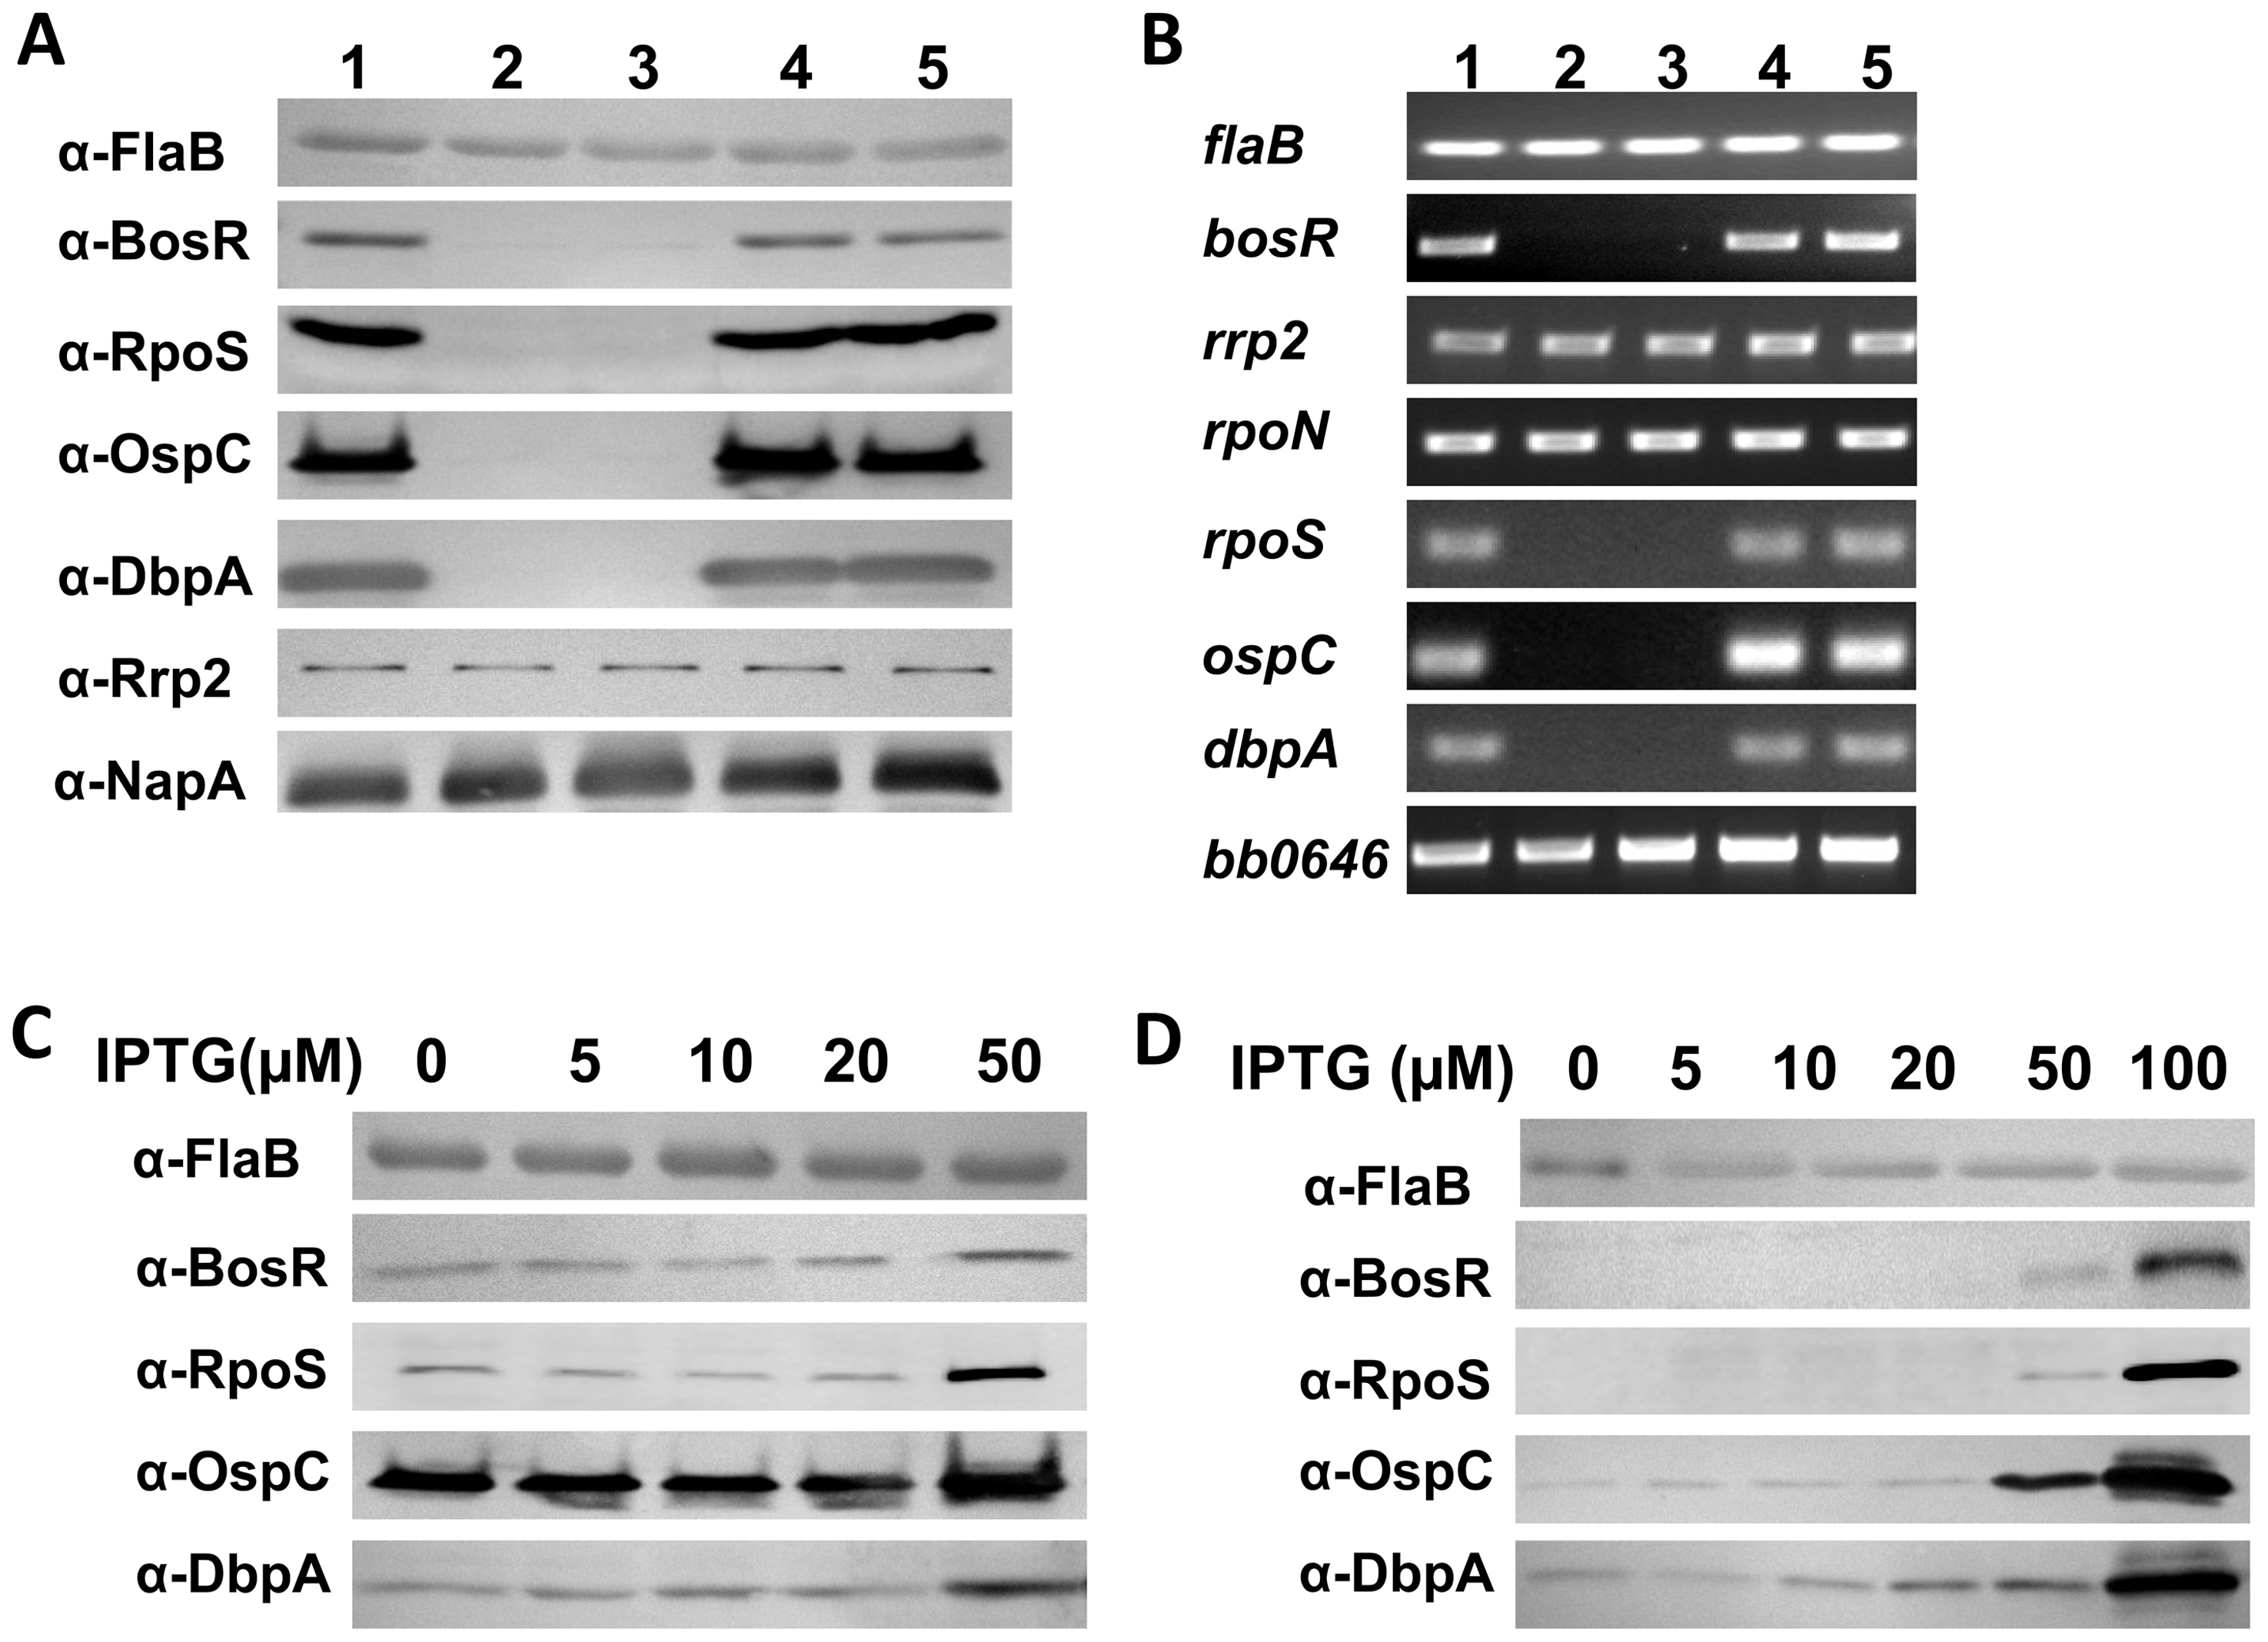 BosR activates the expression of <i>rpoS</i>, <i>ospC</i> and <i>dbpA</i>.